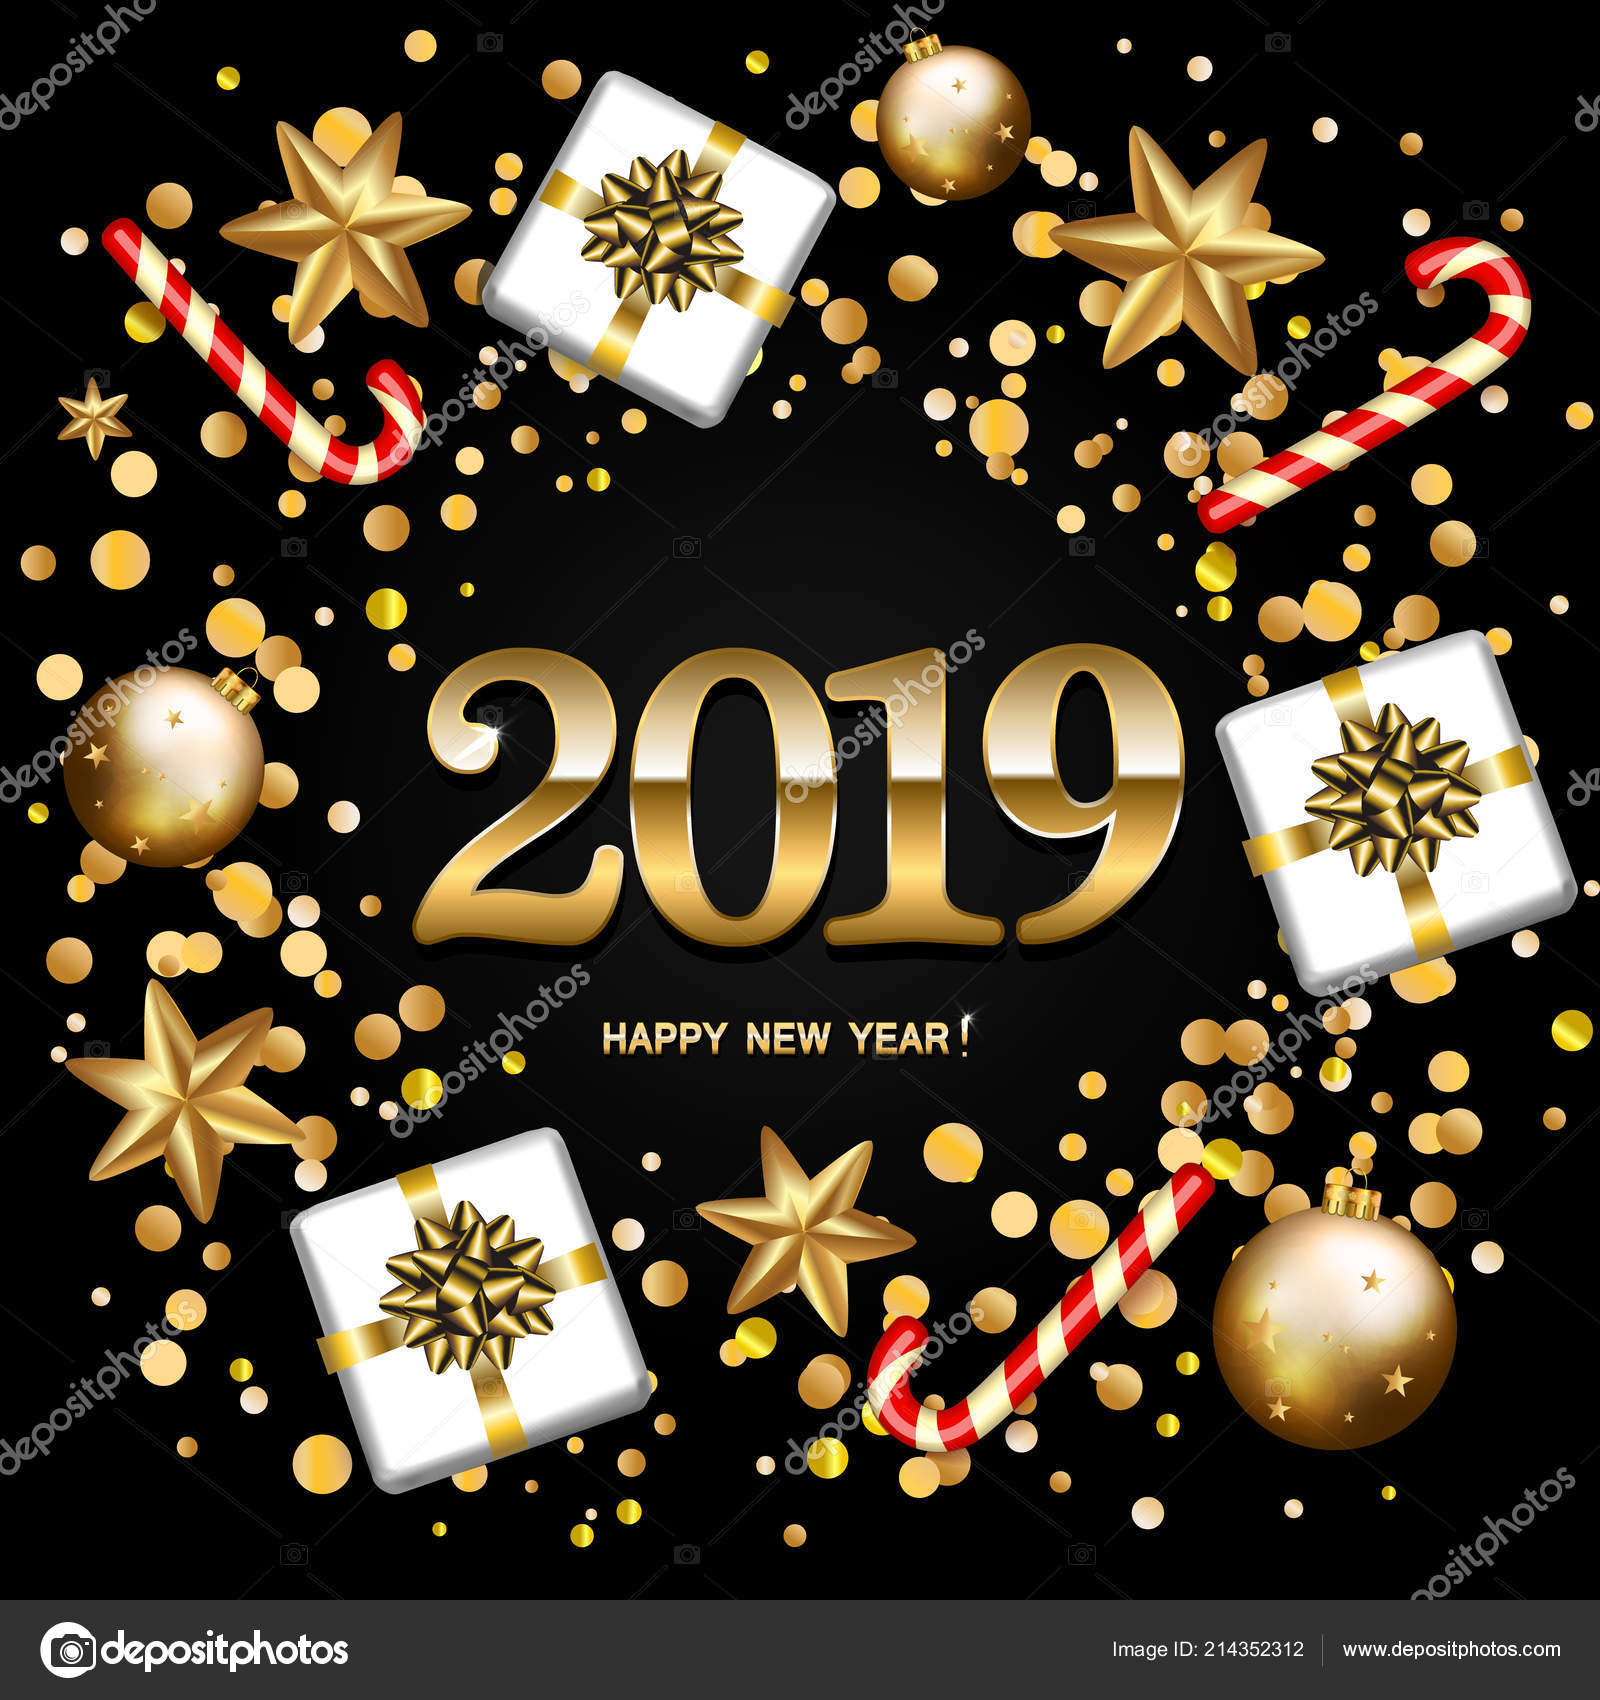 Happy New Year Images 2019 55